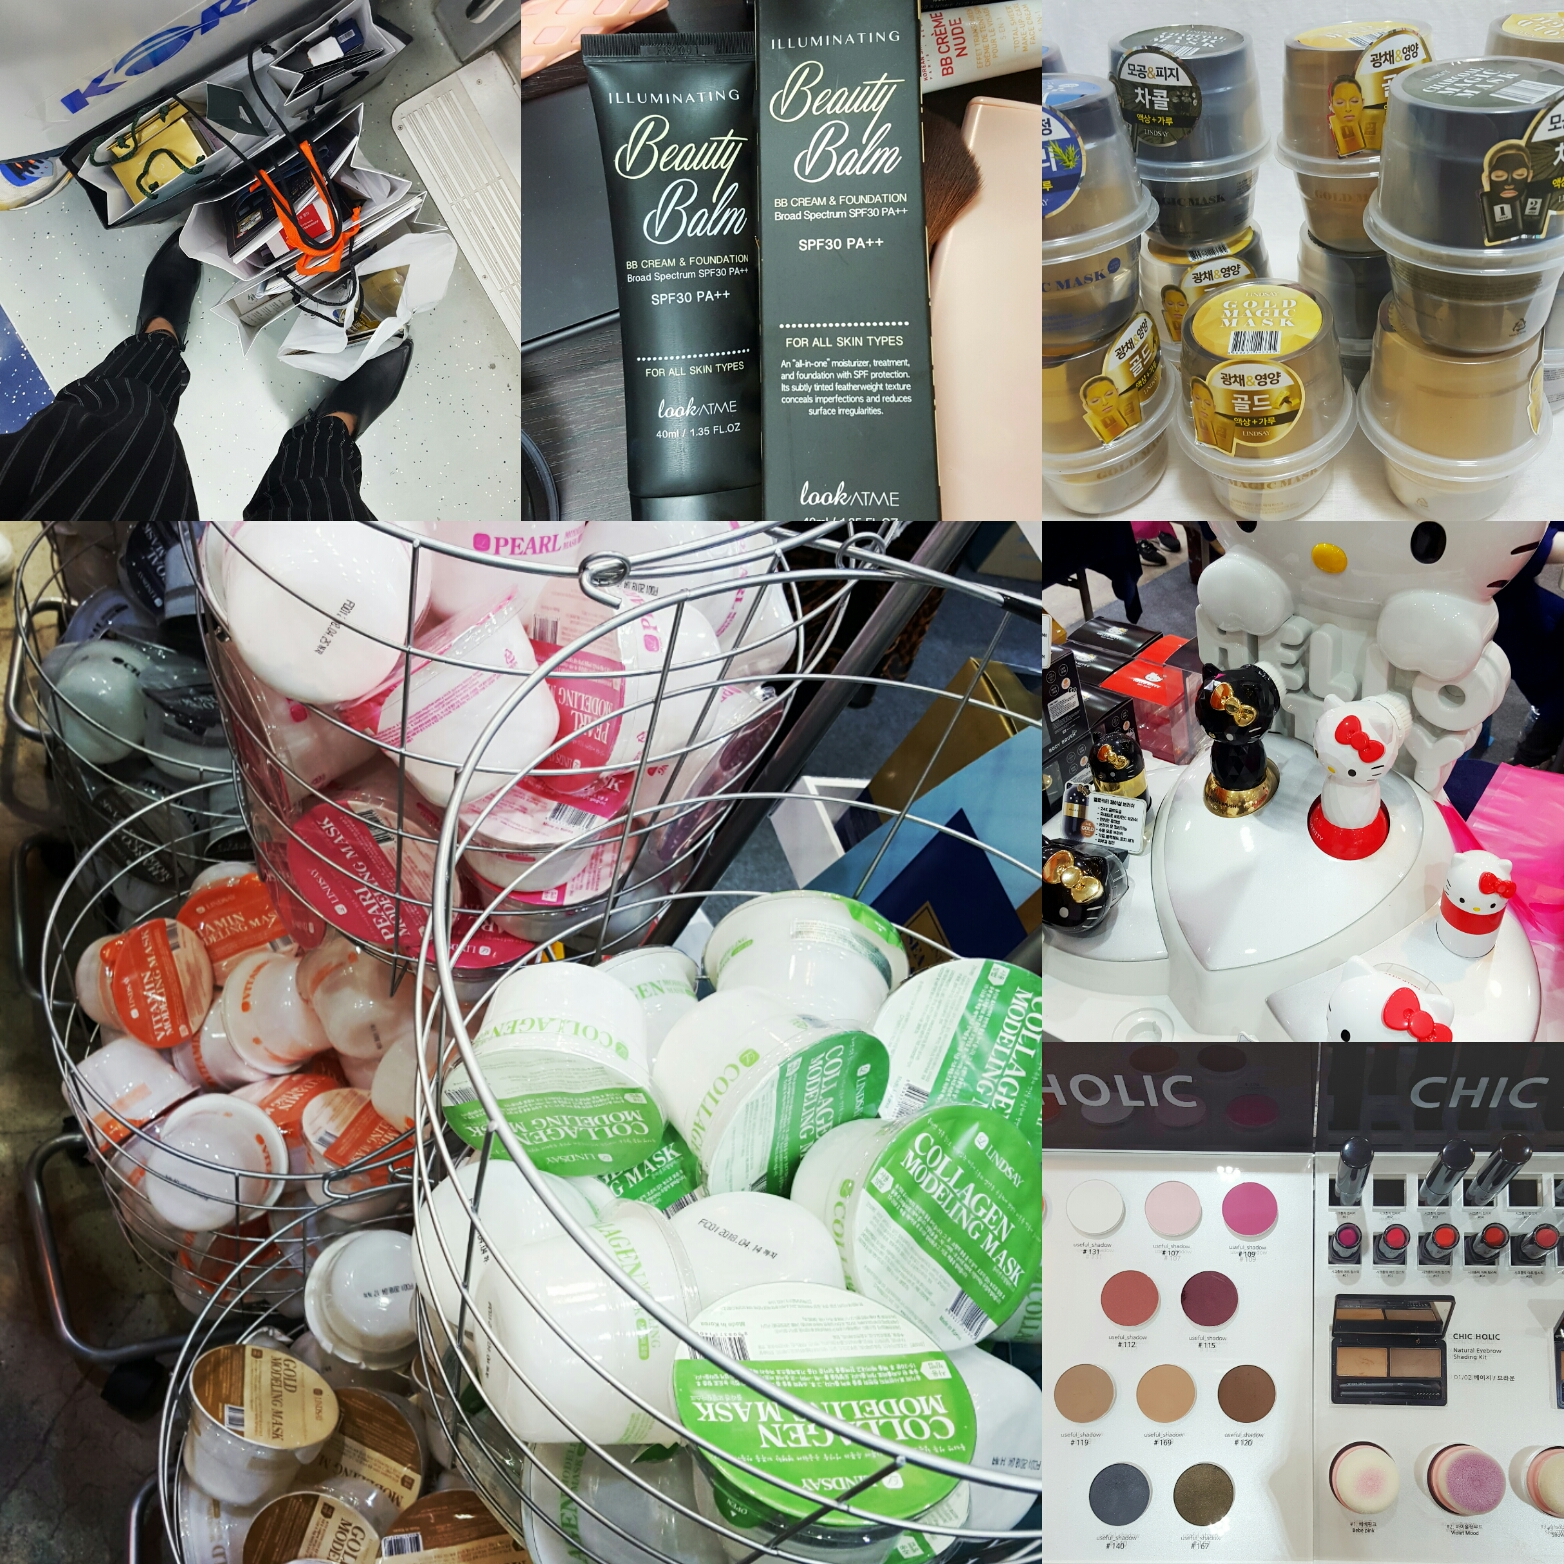 Cosmo Beauty Expo Seoul Haul 2016